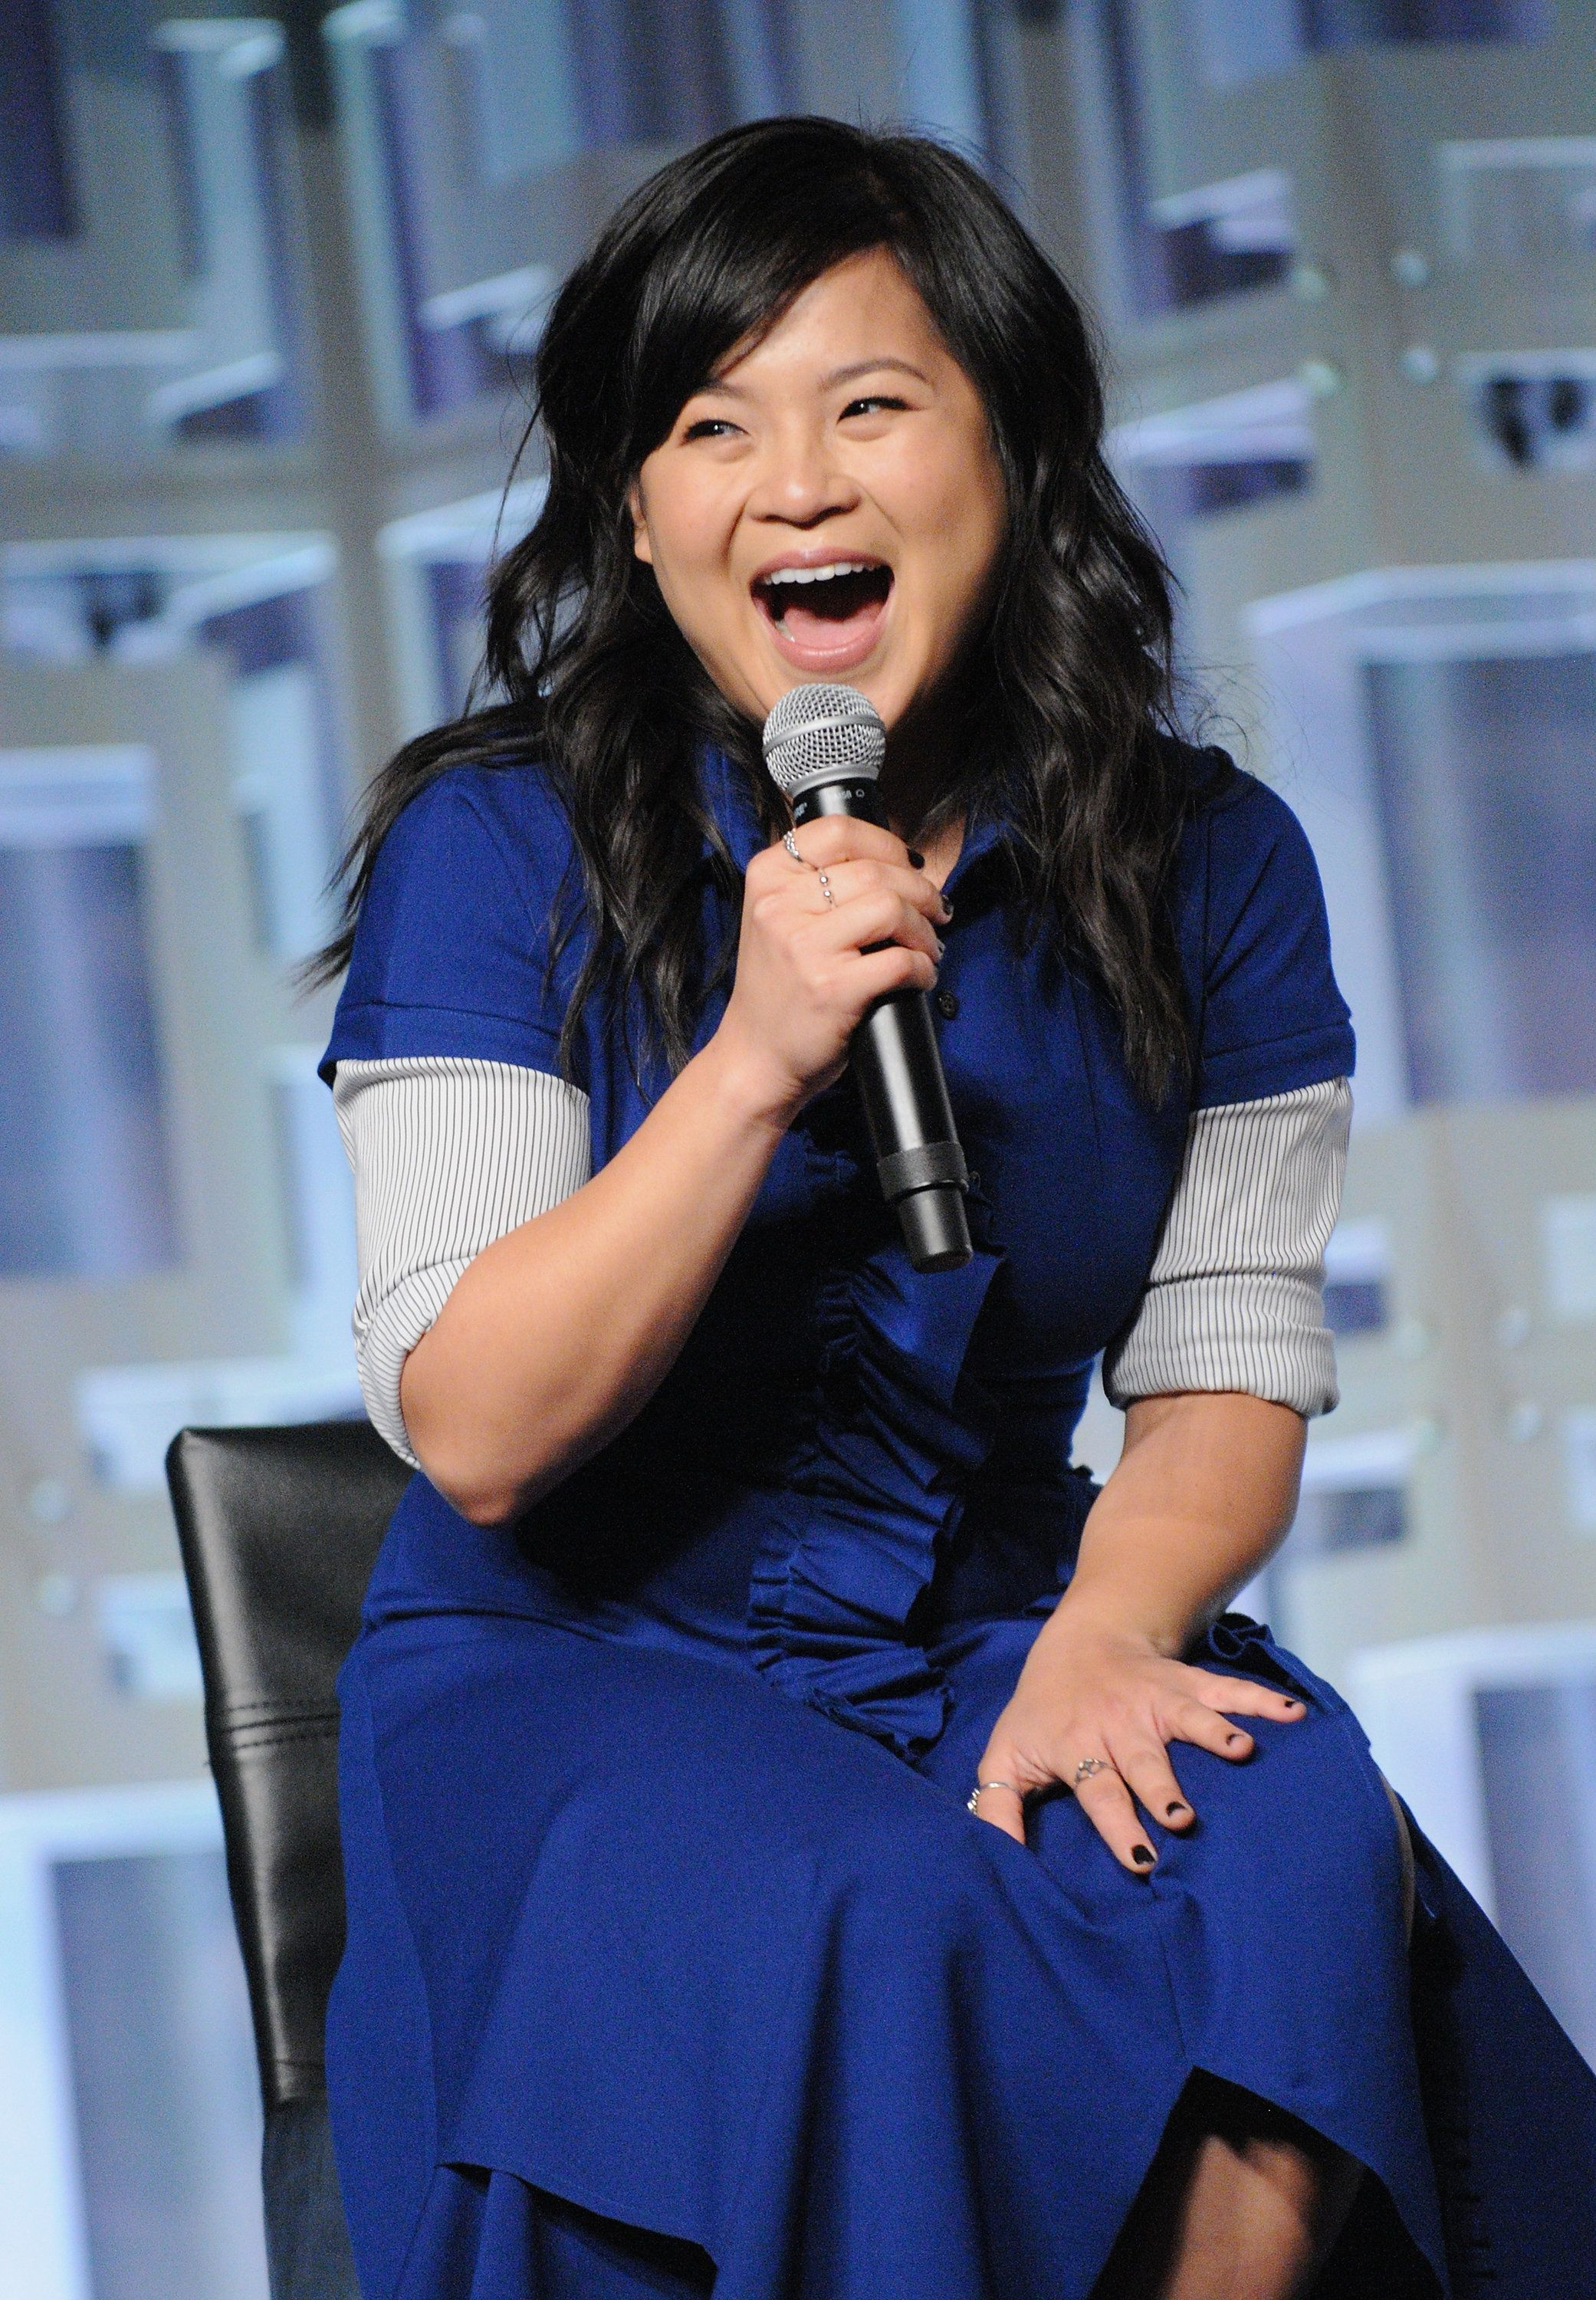 ORLANDO, FL - APRIL 14:  Kelly Marie Tran attends the Star Wars: The Last Jedi panel during the 2017 Star Wars Celebration at Orange County Convention Center on April 14, 2017 in Orlando, Florida.  (Photo by Gerardo Mora/Getty Images for Disney)